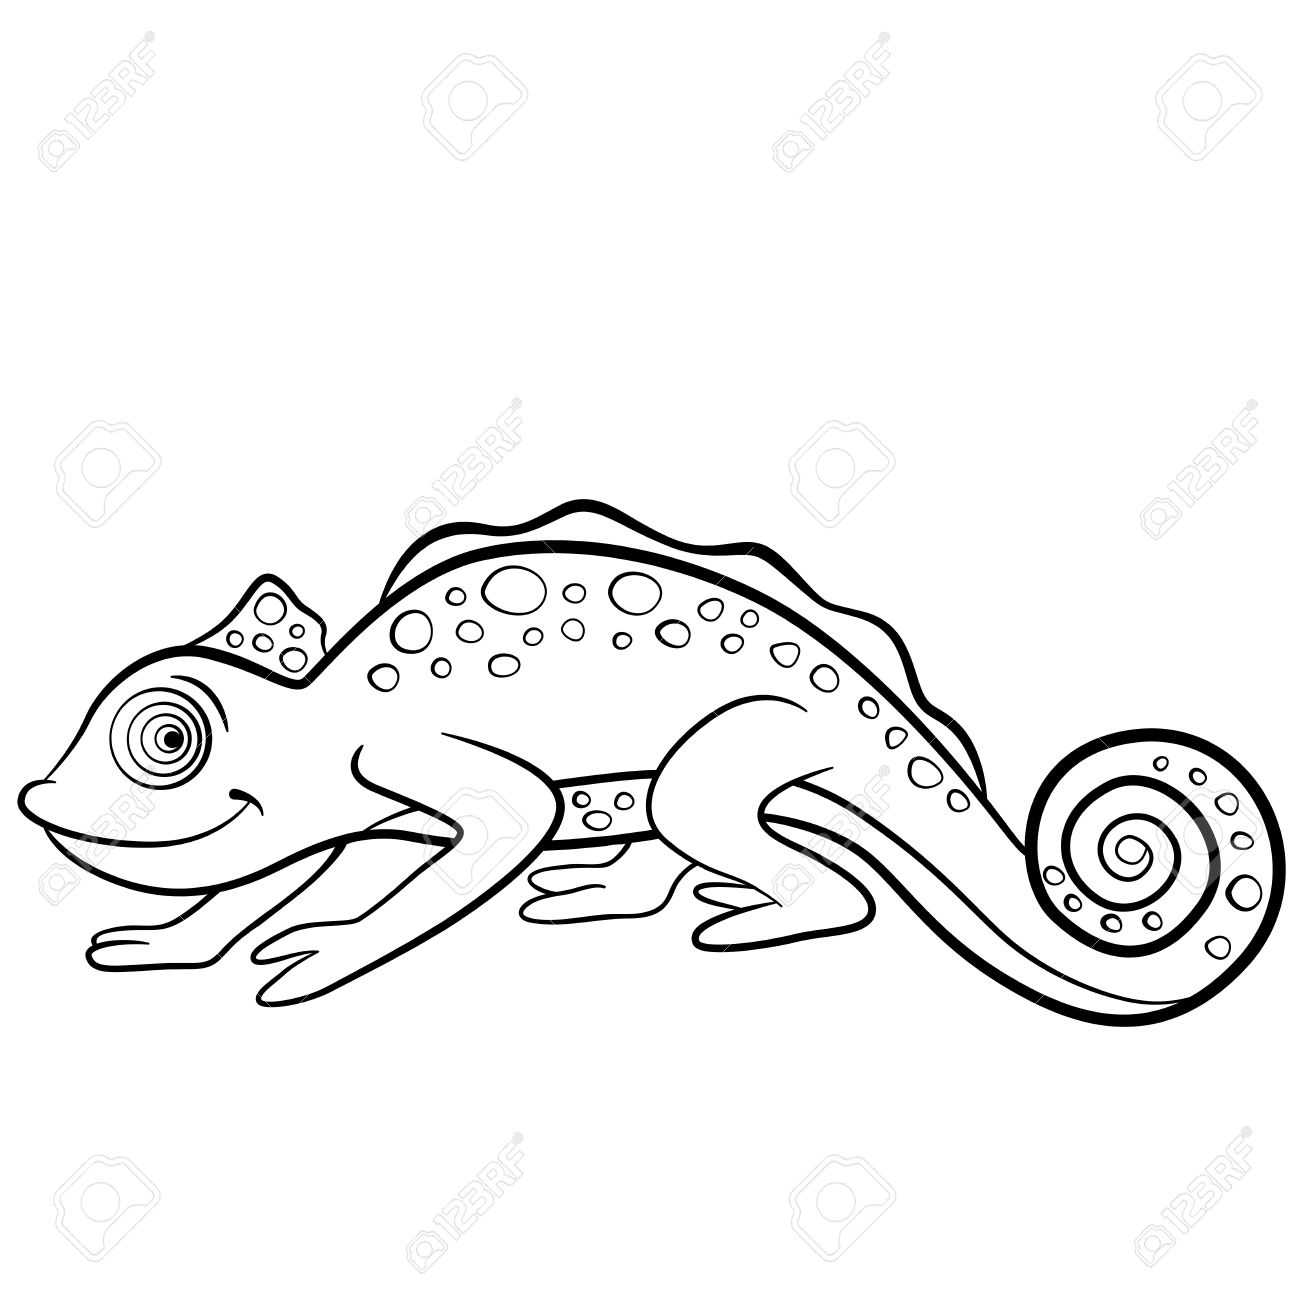 Coloring Pages Wild Animals Little Cute Chameleon Smiles Royalty